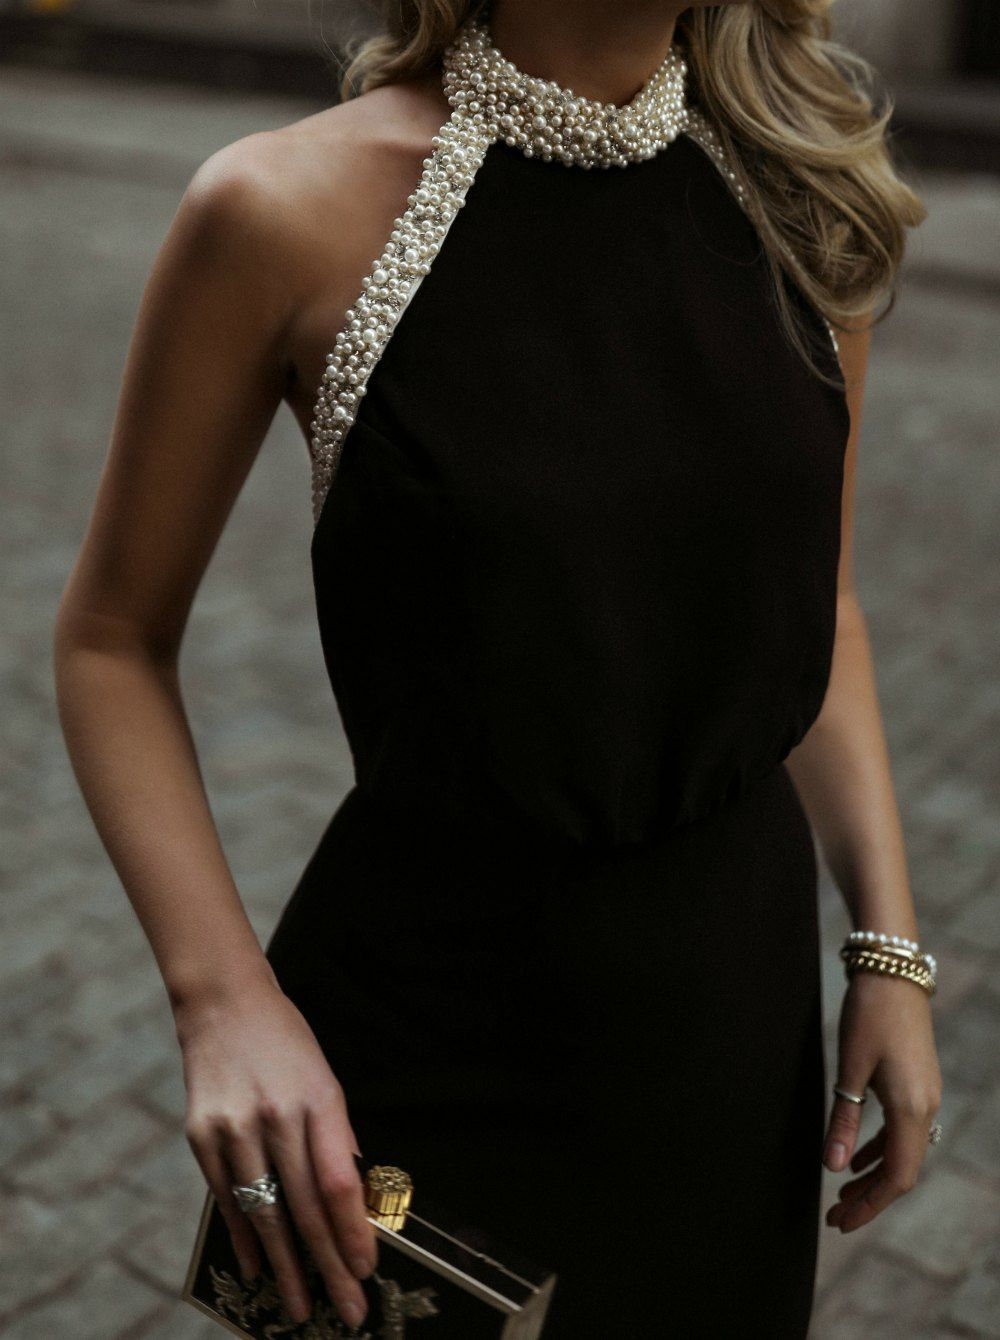 30 Dresses 30 Days Day 17 Corporate Charity Black Backless Gown With A Glamorous Pearl Encrusted Halter Neck Black Fashion Backless Gown Backless Dress [ 1340 x 1000 Pixel ]